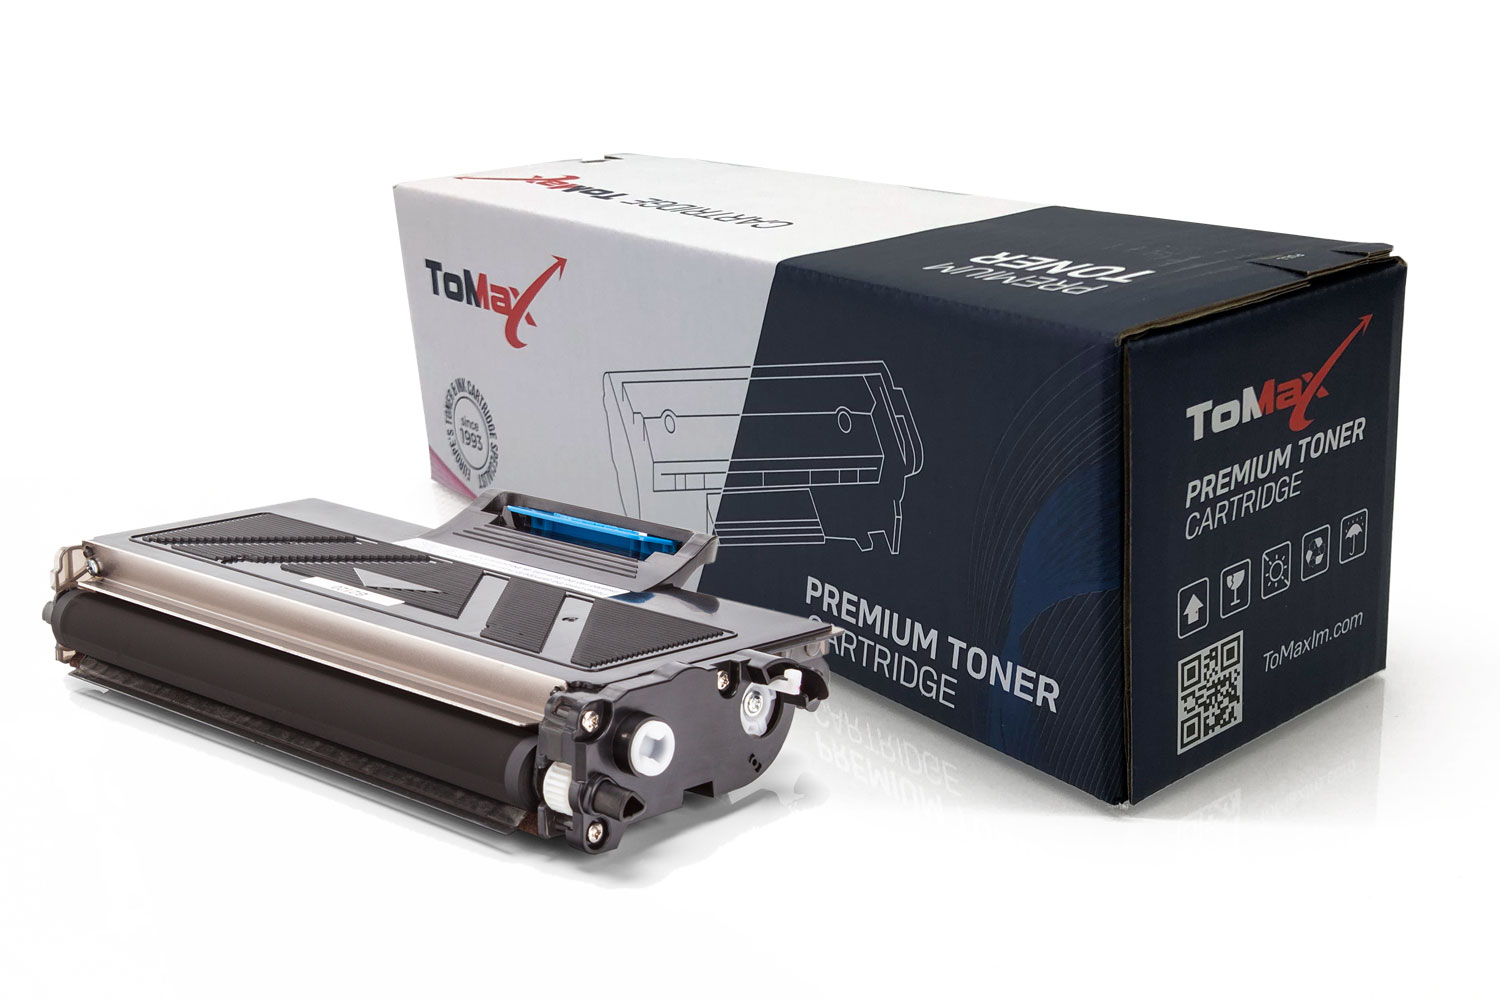 ToMax Premium Toner Cartridge replaces Canon 6270B002 / 731M Magenta